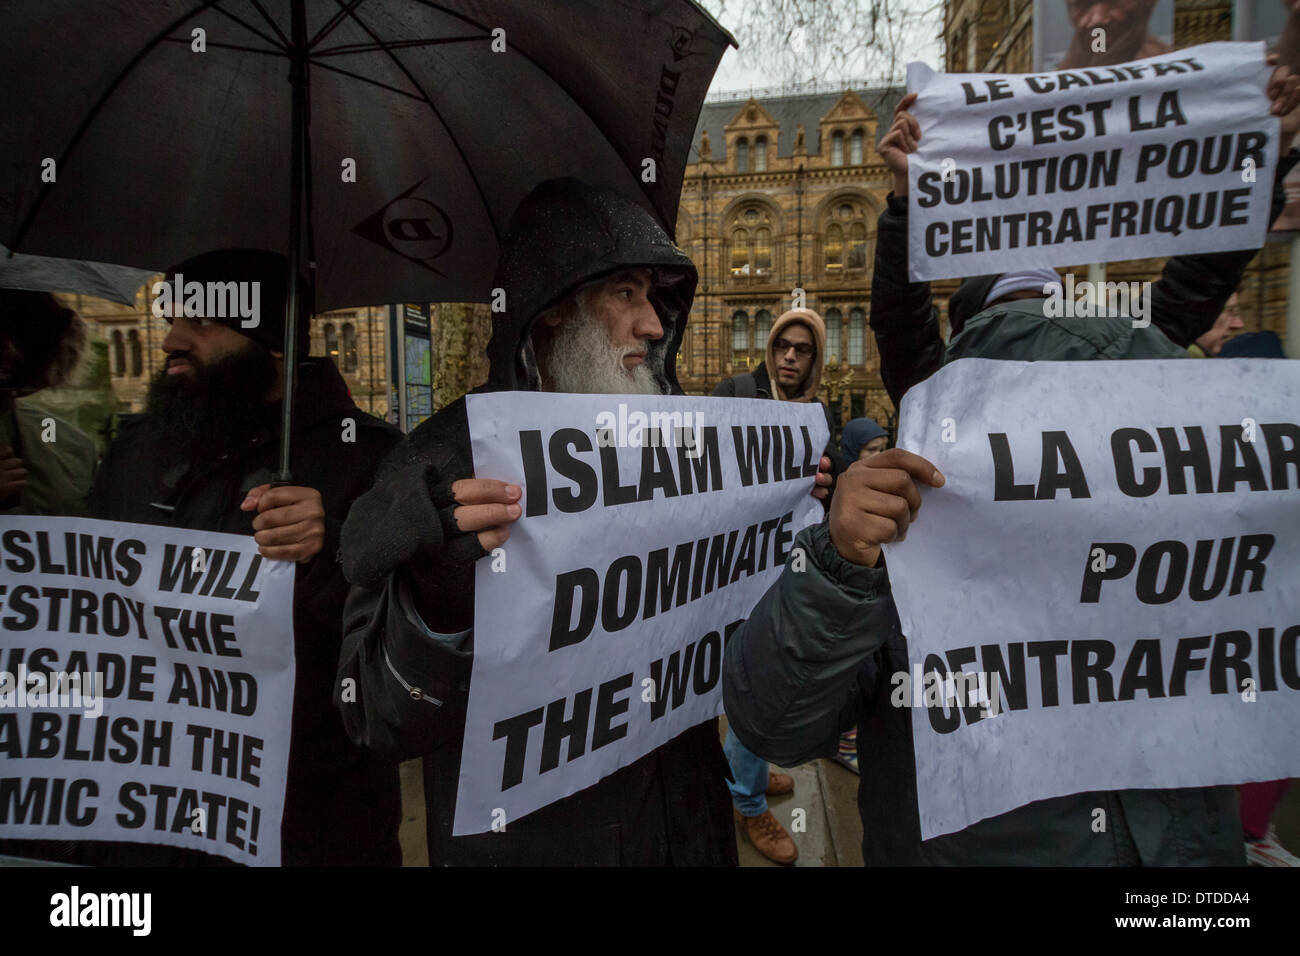 Radical Islamists protest outside French Consulate in London - Stock Image